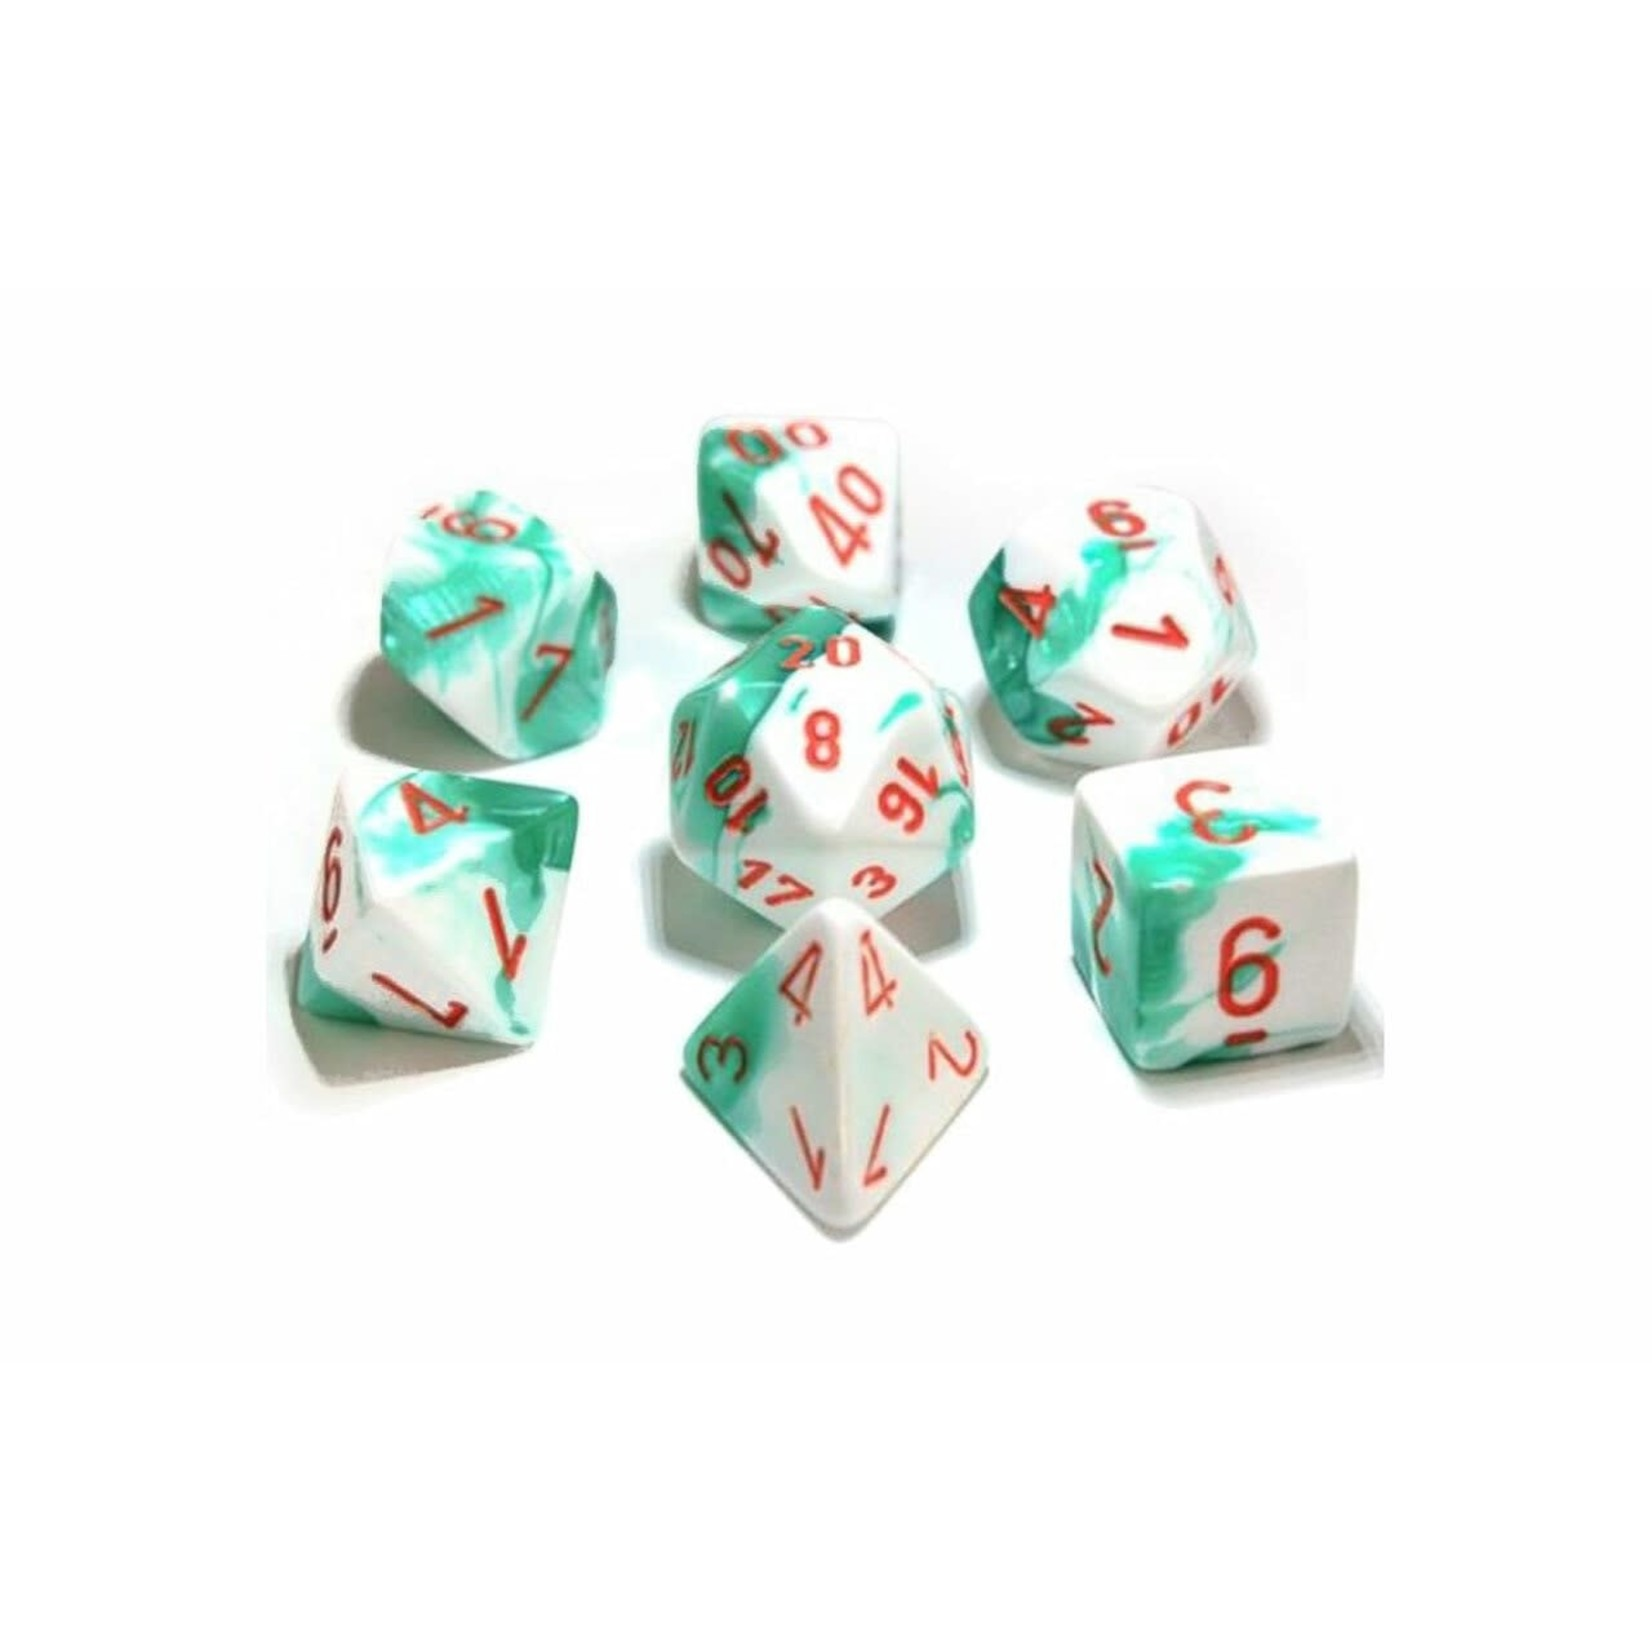 Chessex Gemini Polyhedral Mint Green-White/orange 7-Die Set